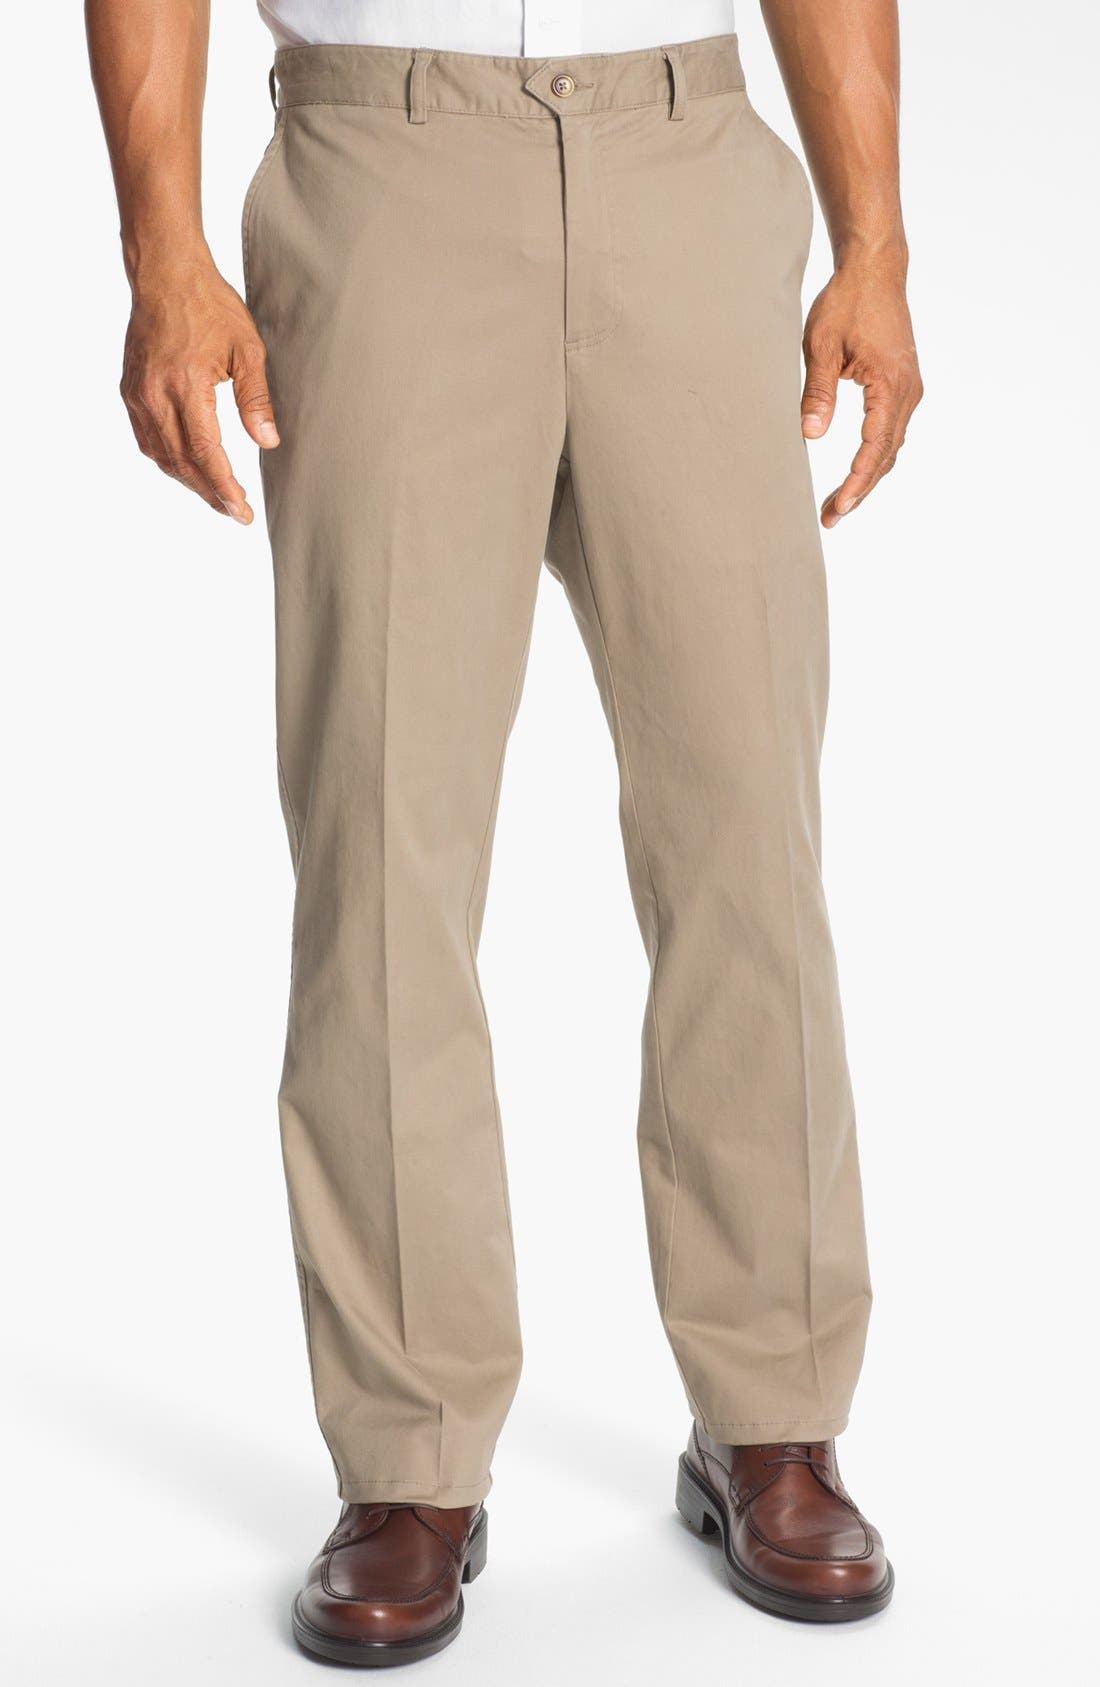 Alternate Image 1 Selected - Cutter & Buck 'Harbor' Flat Front Pants